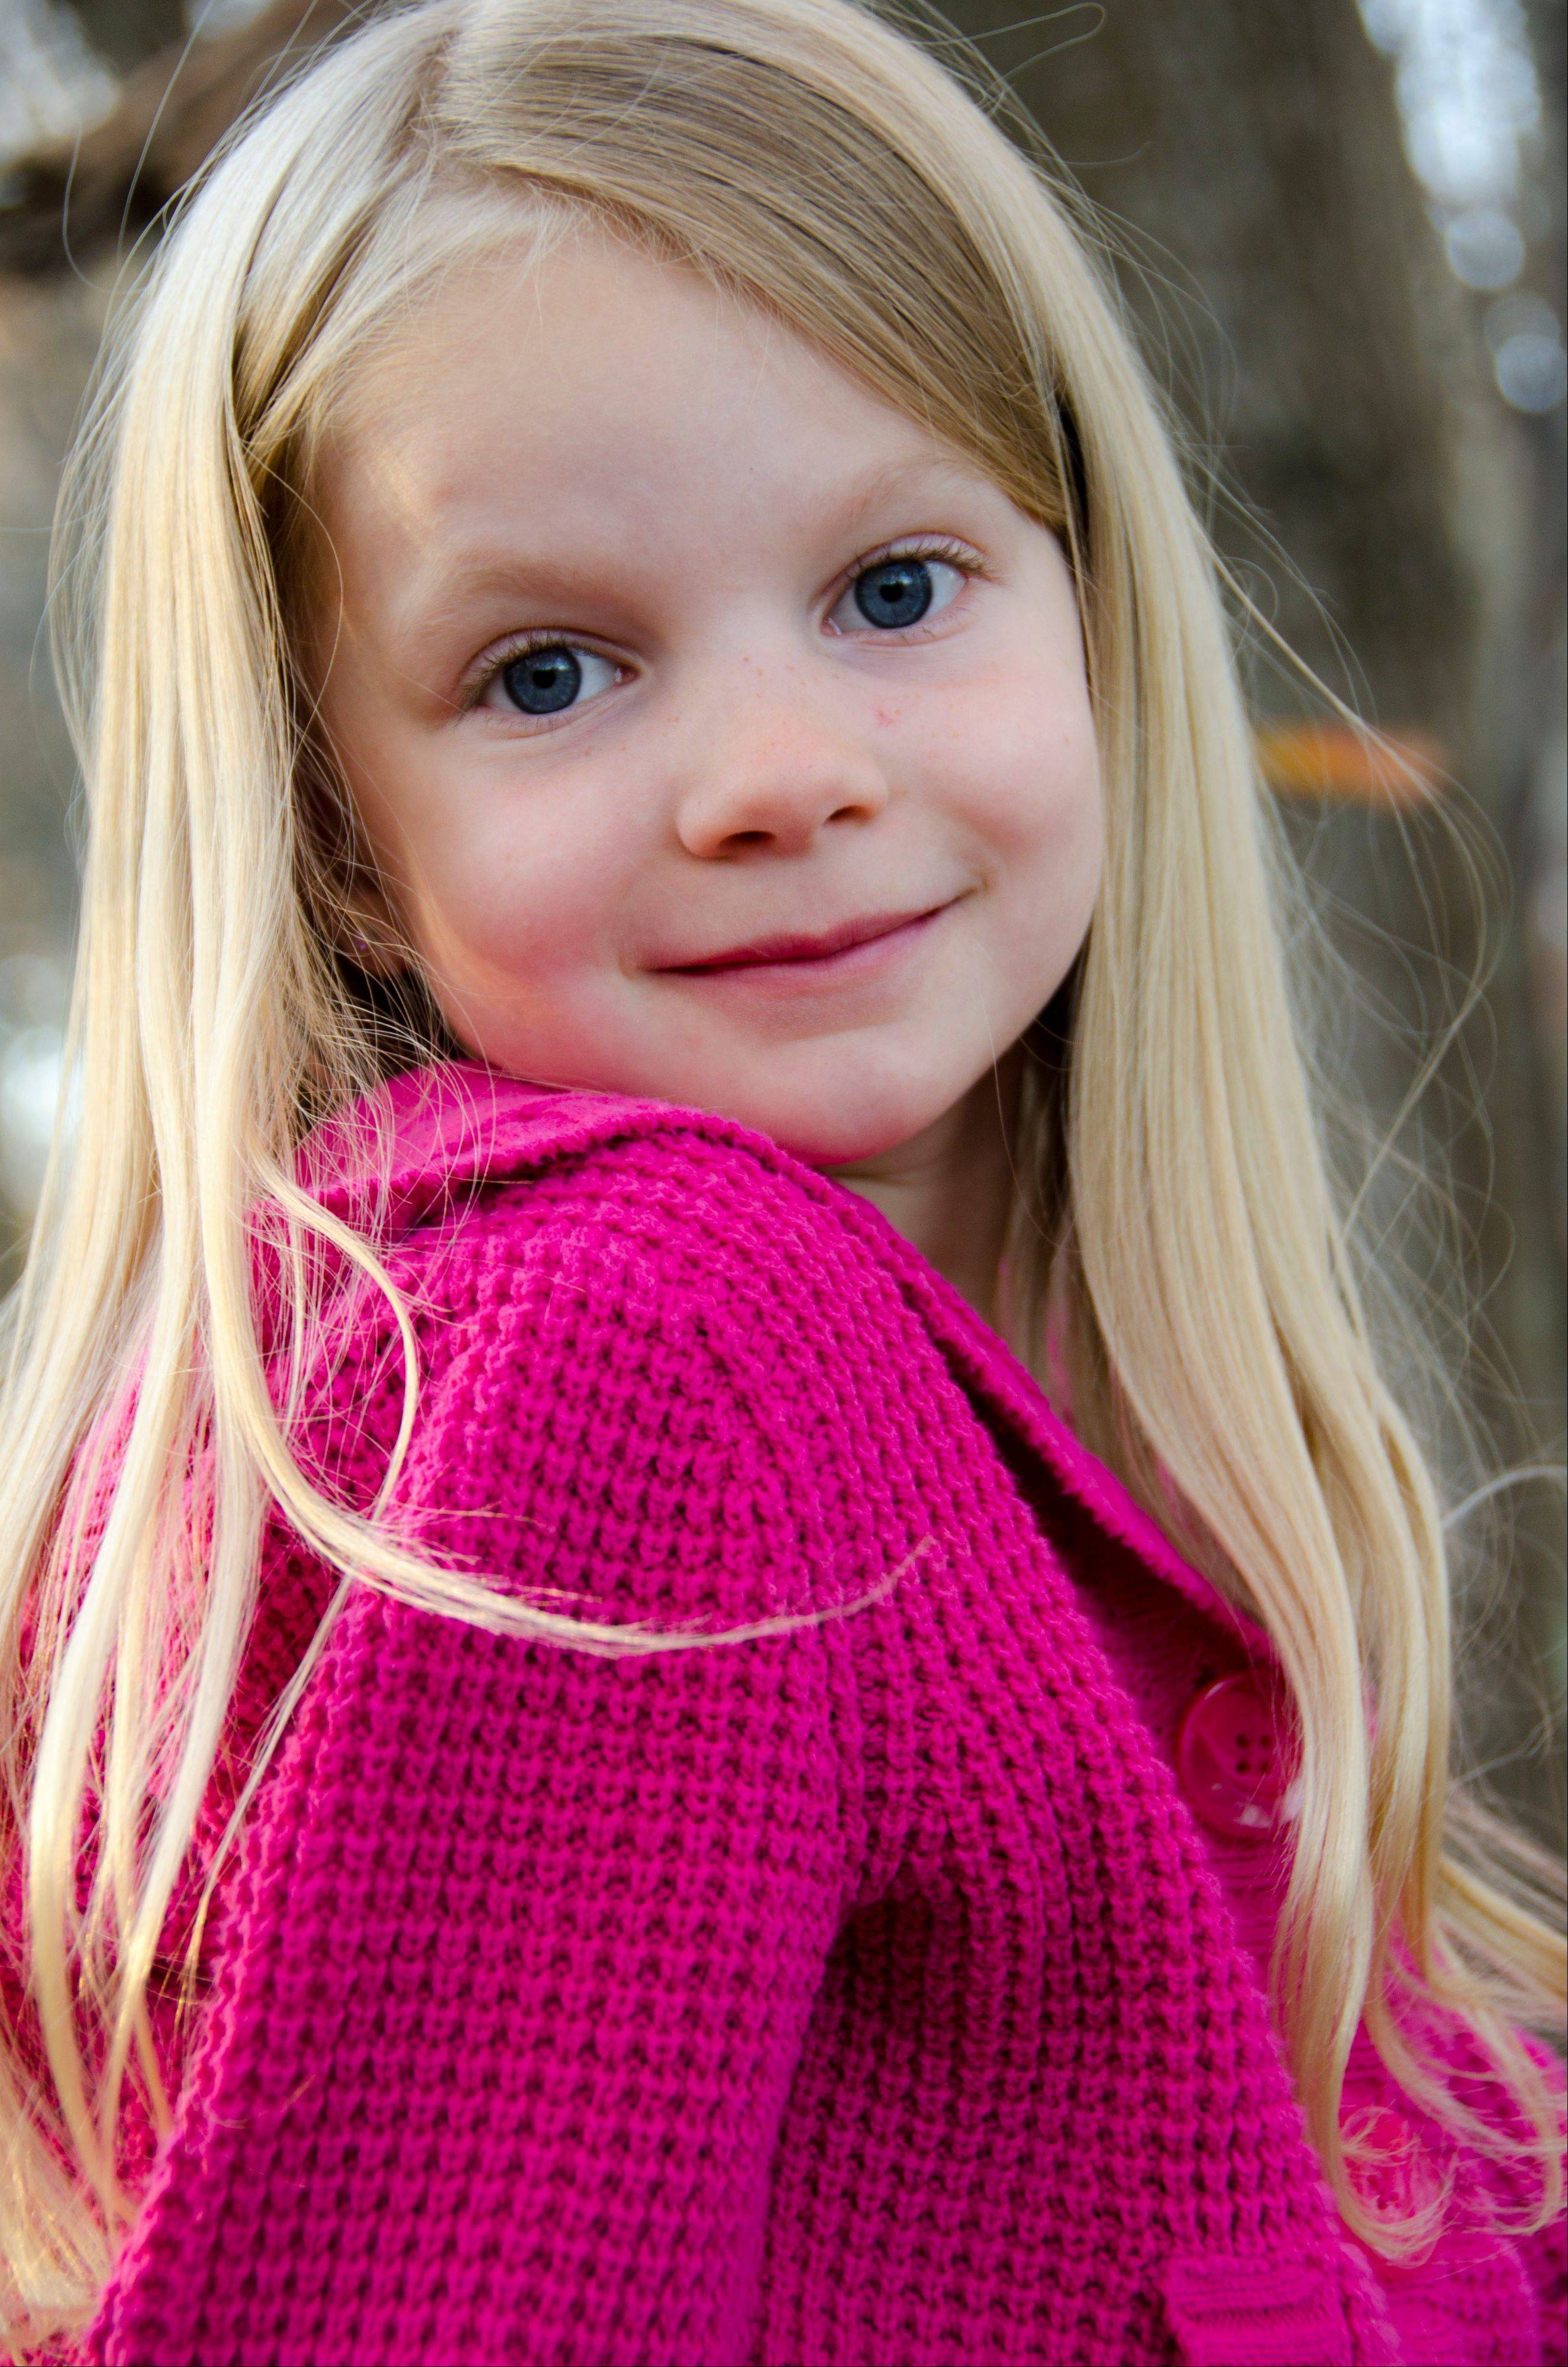 This 2012 photo provided by the family shows Emilie Alice Parker. Parker was killed Friday, Dec. 14, 2012, when a gunman opened fire at Sandy Hook elementary school in Newtown, Conn., killing 26 children and adults at the school.